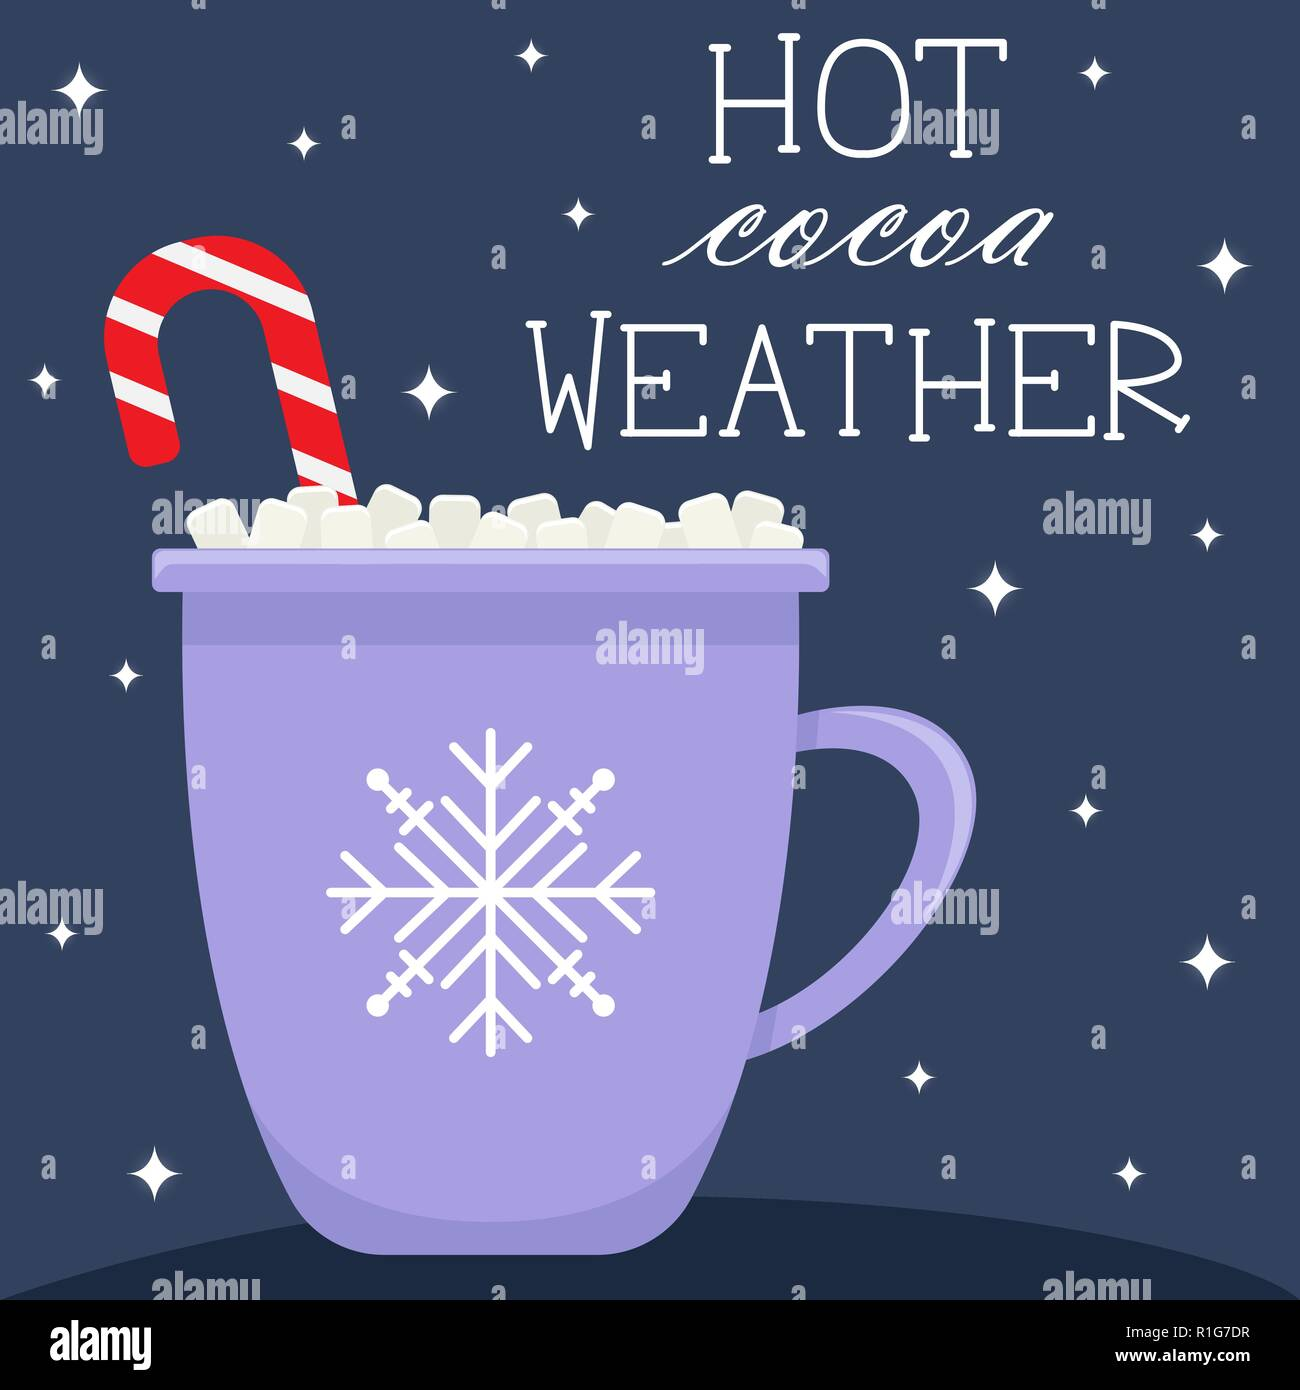 Winter greeting card in flat cartoon style. Hot cocoa weather. - Stock Vector